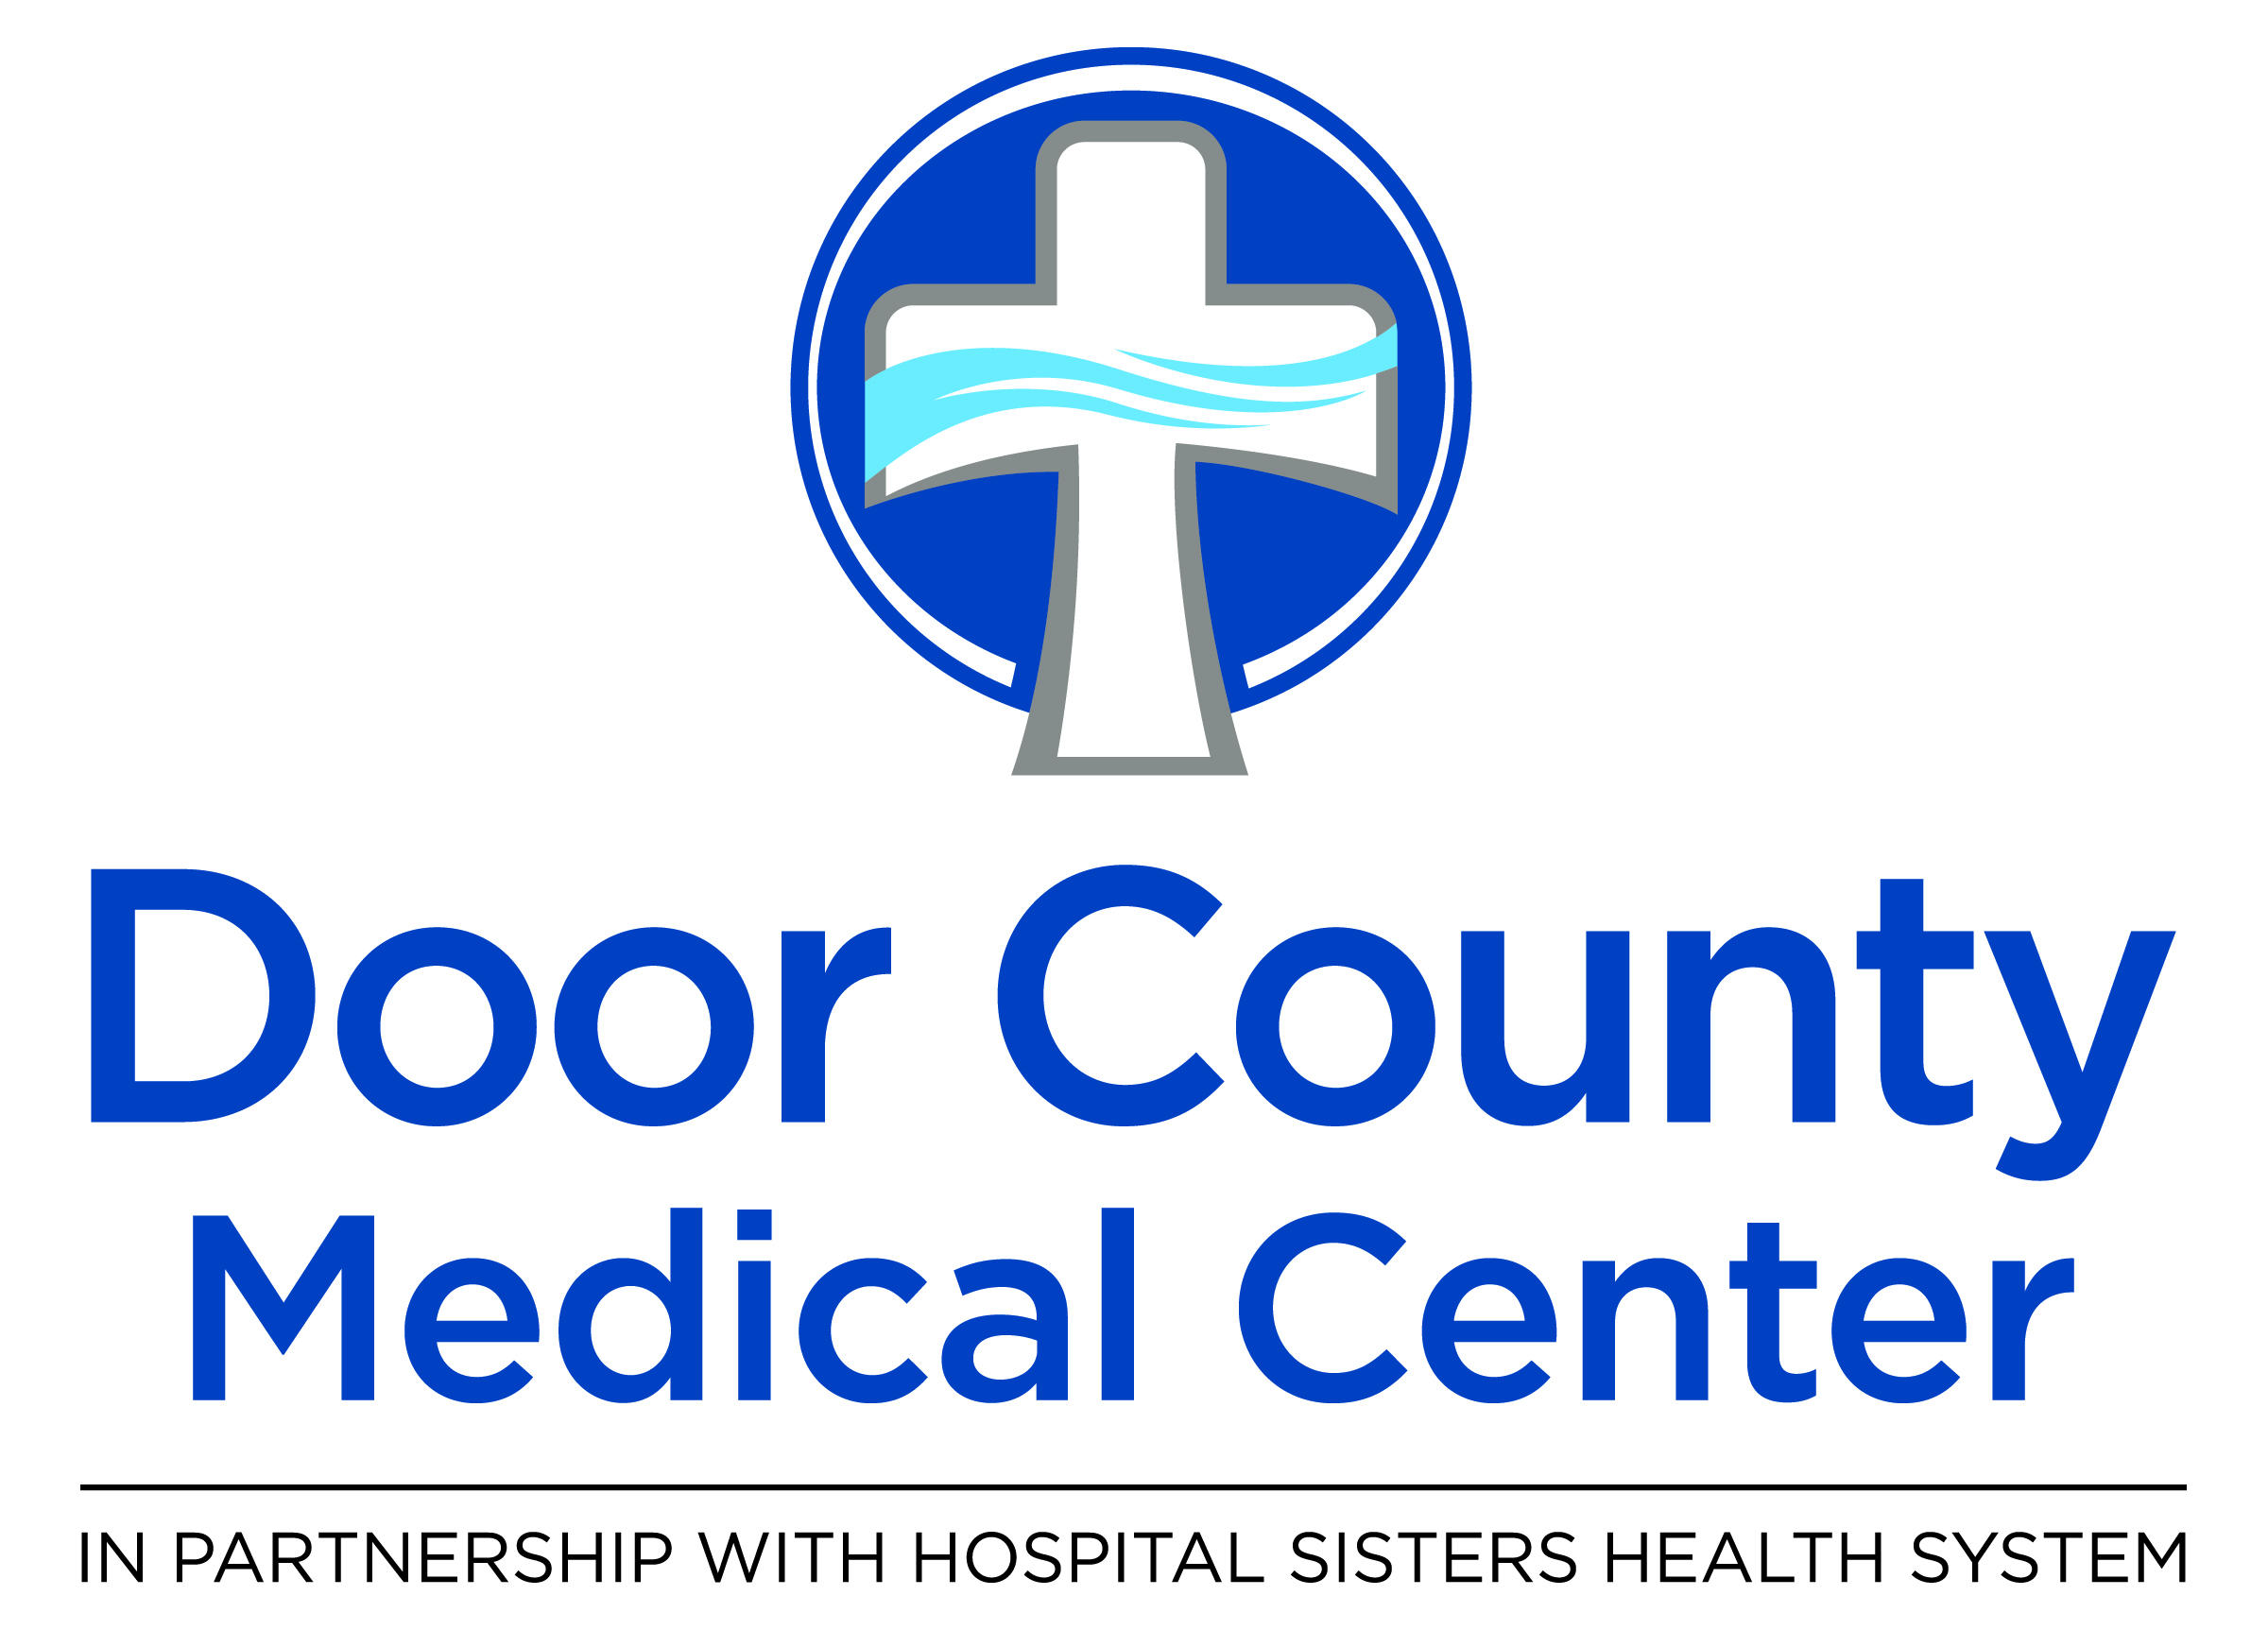 Door County Medical Center